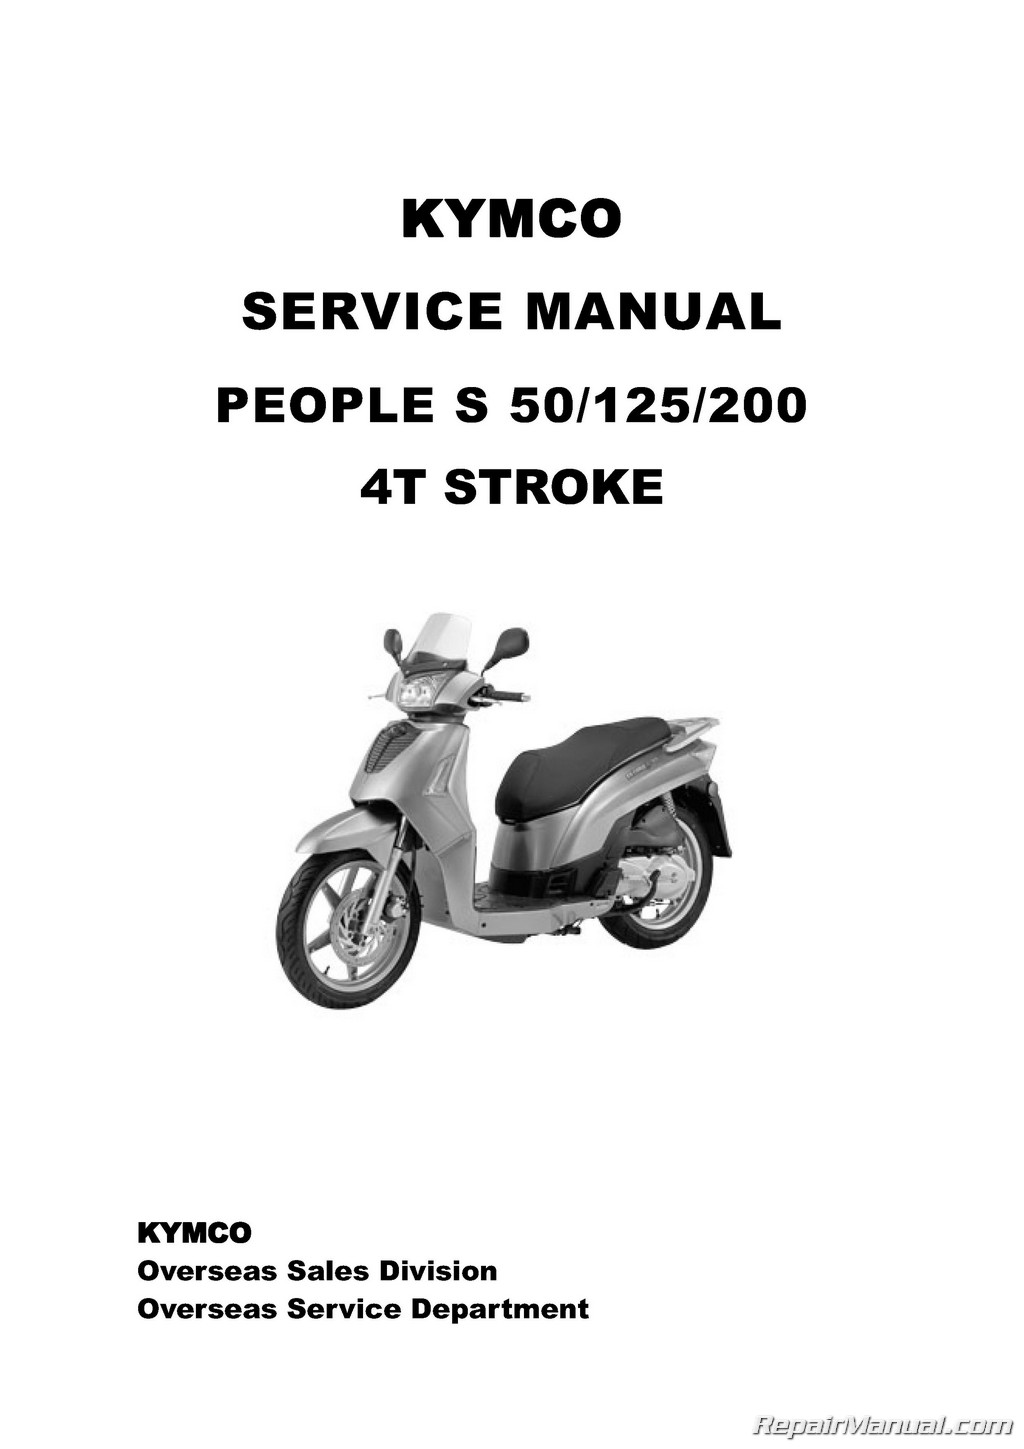 Kymco People S Scooter Service Manual Printed Cyclepedia on honda atv parts